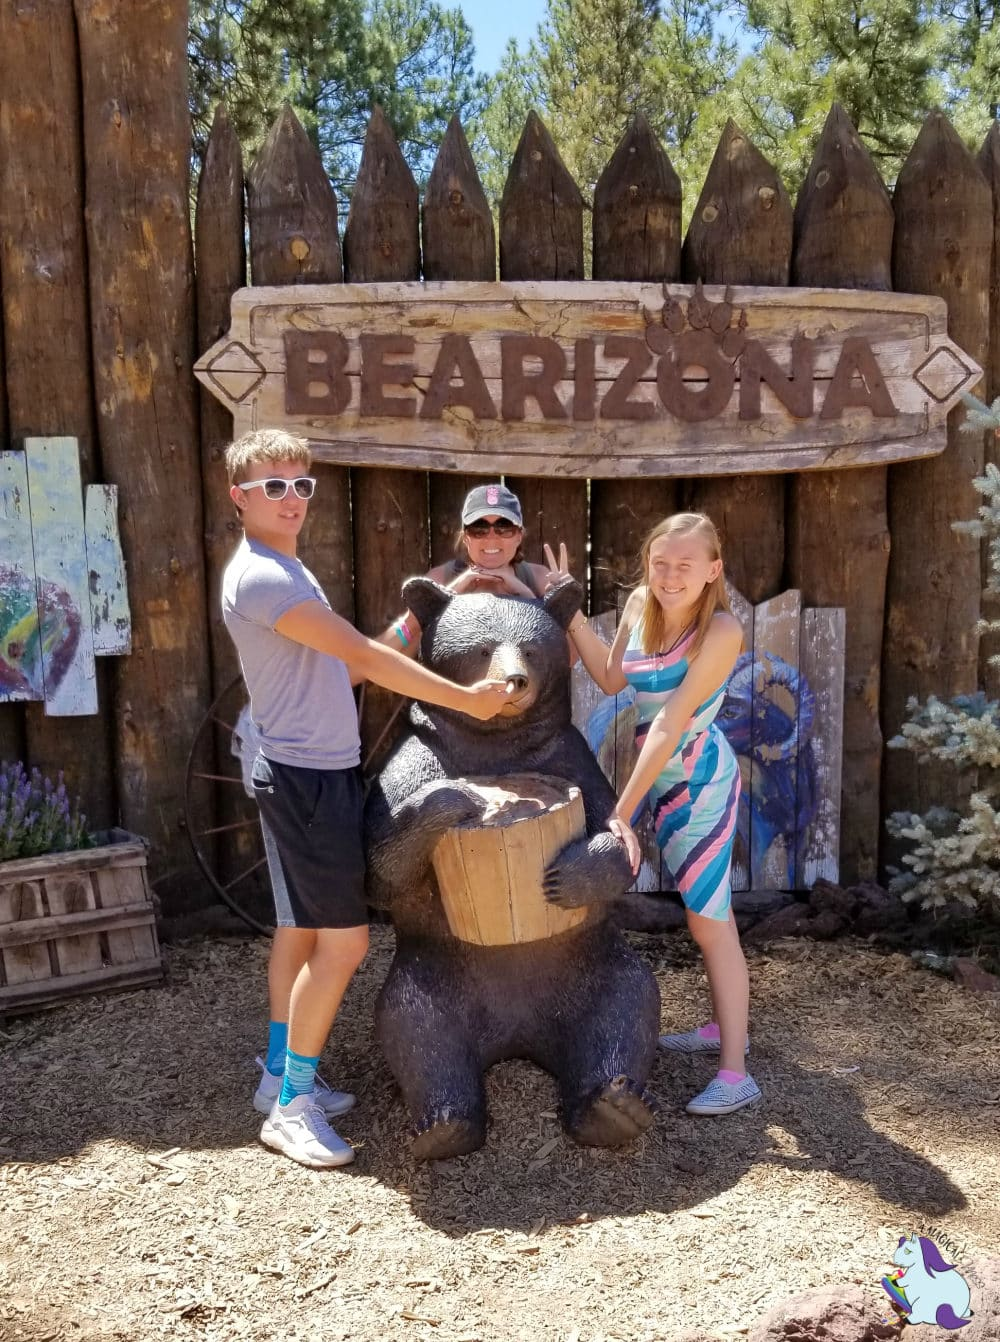 Bearizona is a drive thru zoo just half an hour from Little America Hotel in Flagstaff, AZ